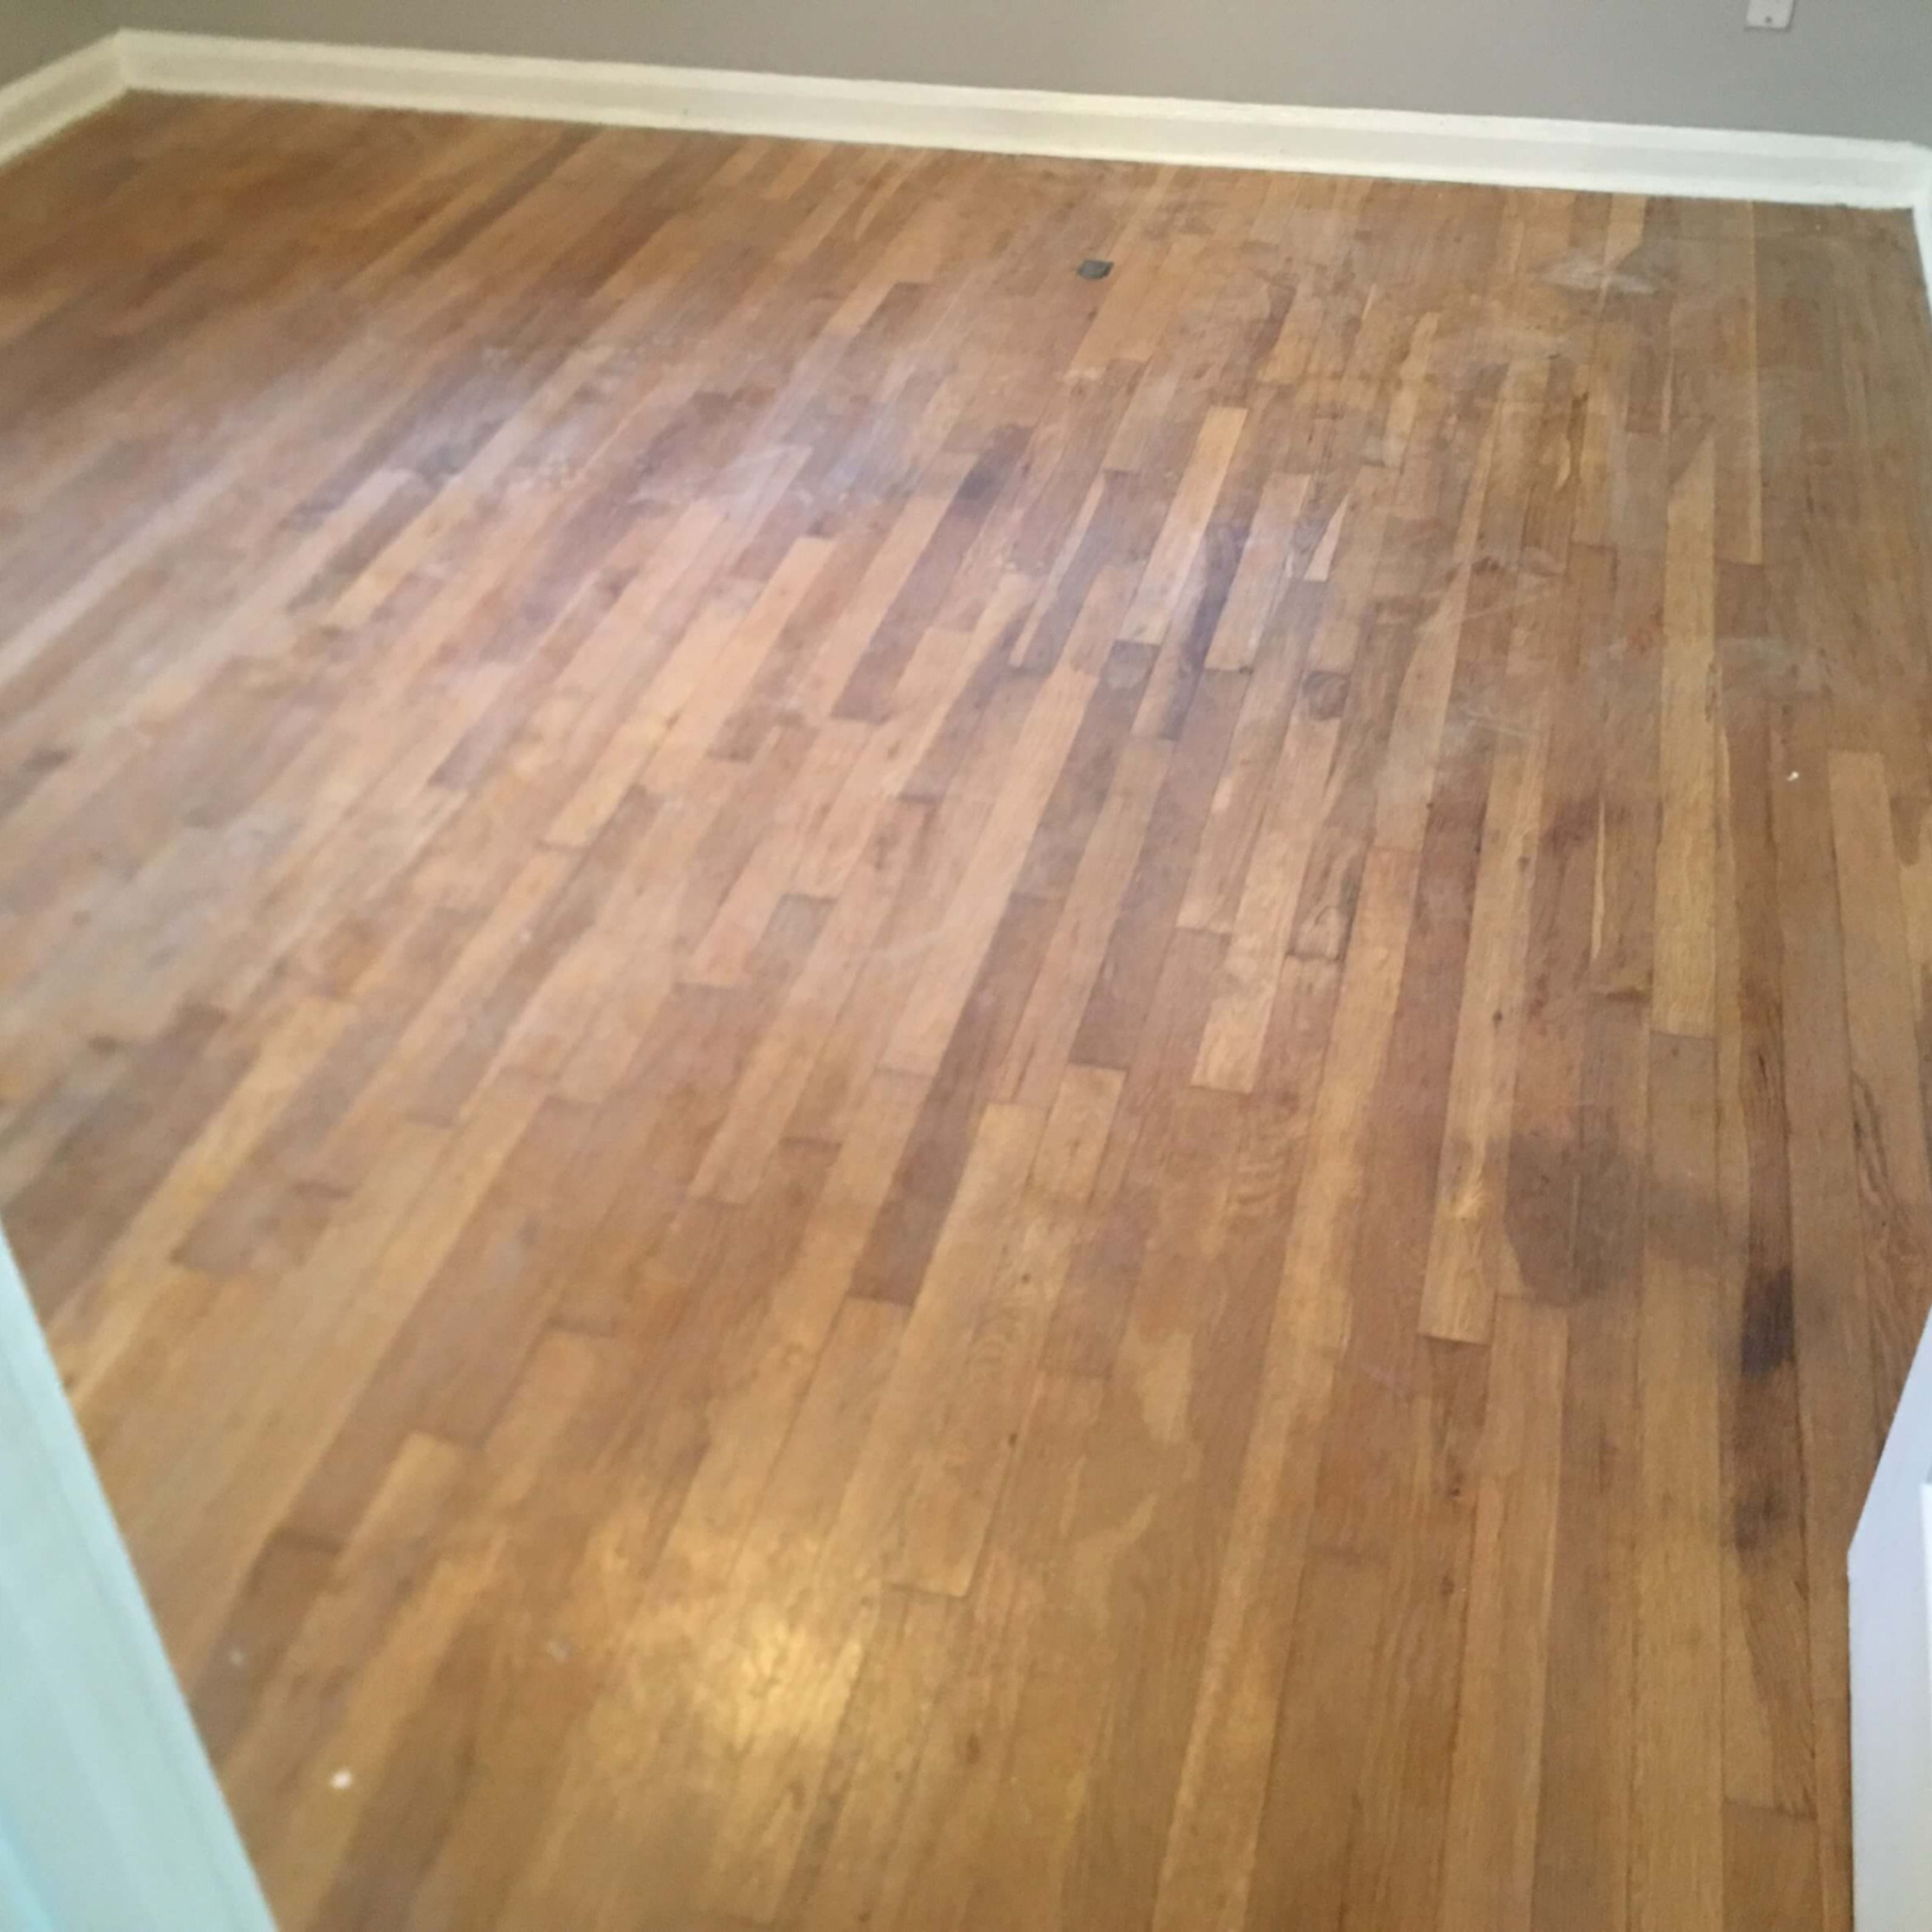 Pin On Wood Floor Cleaning